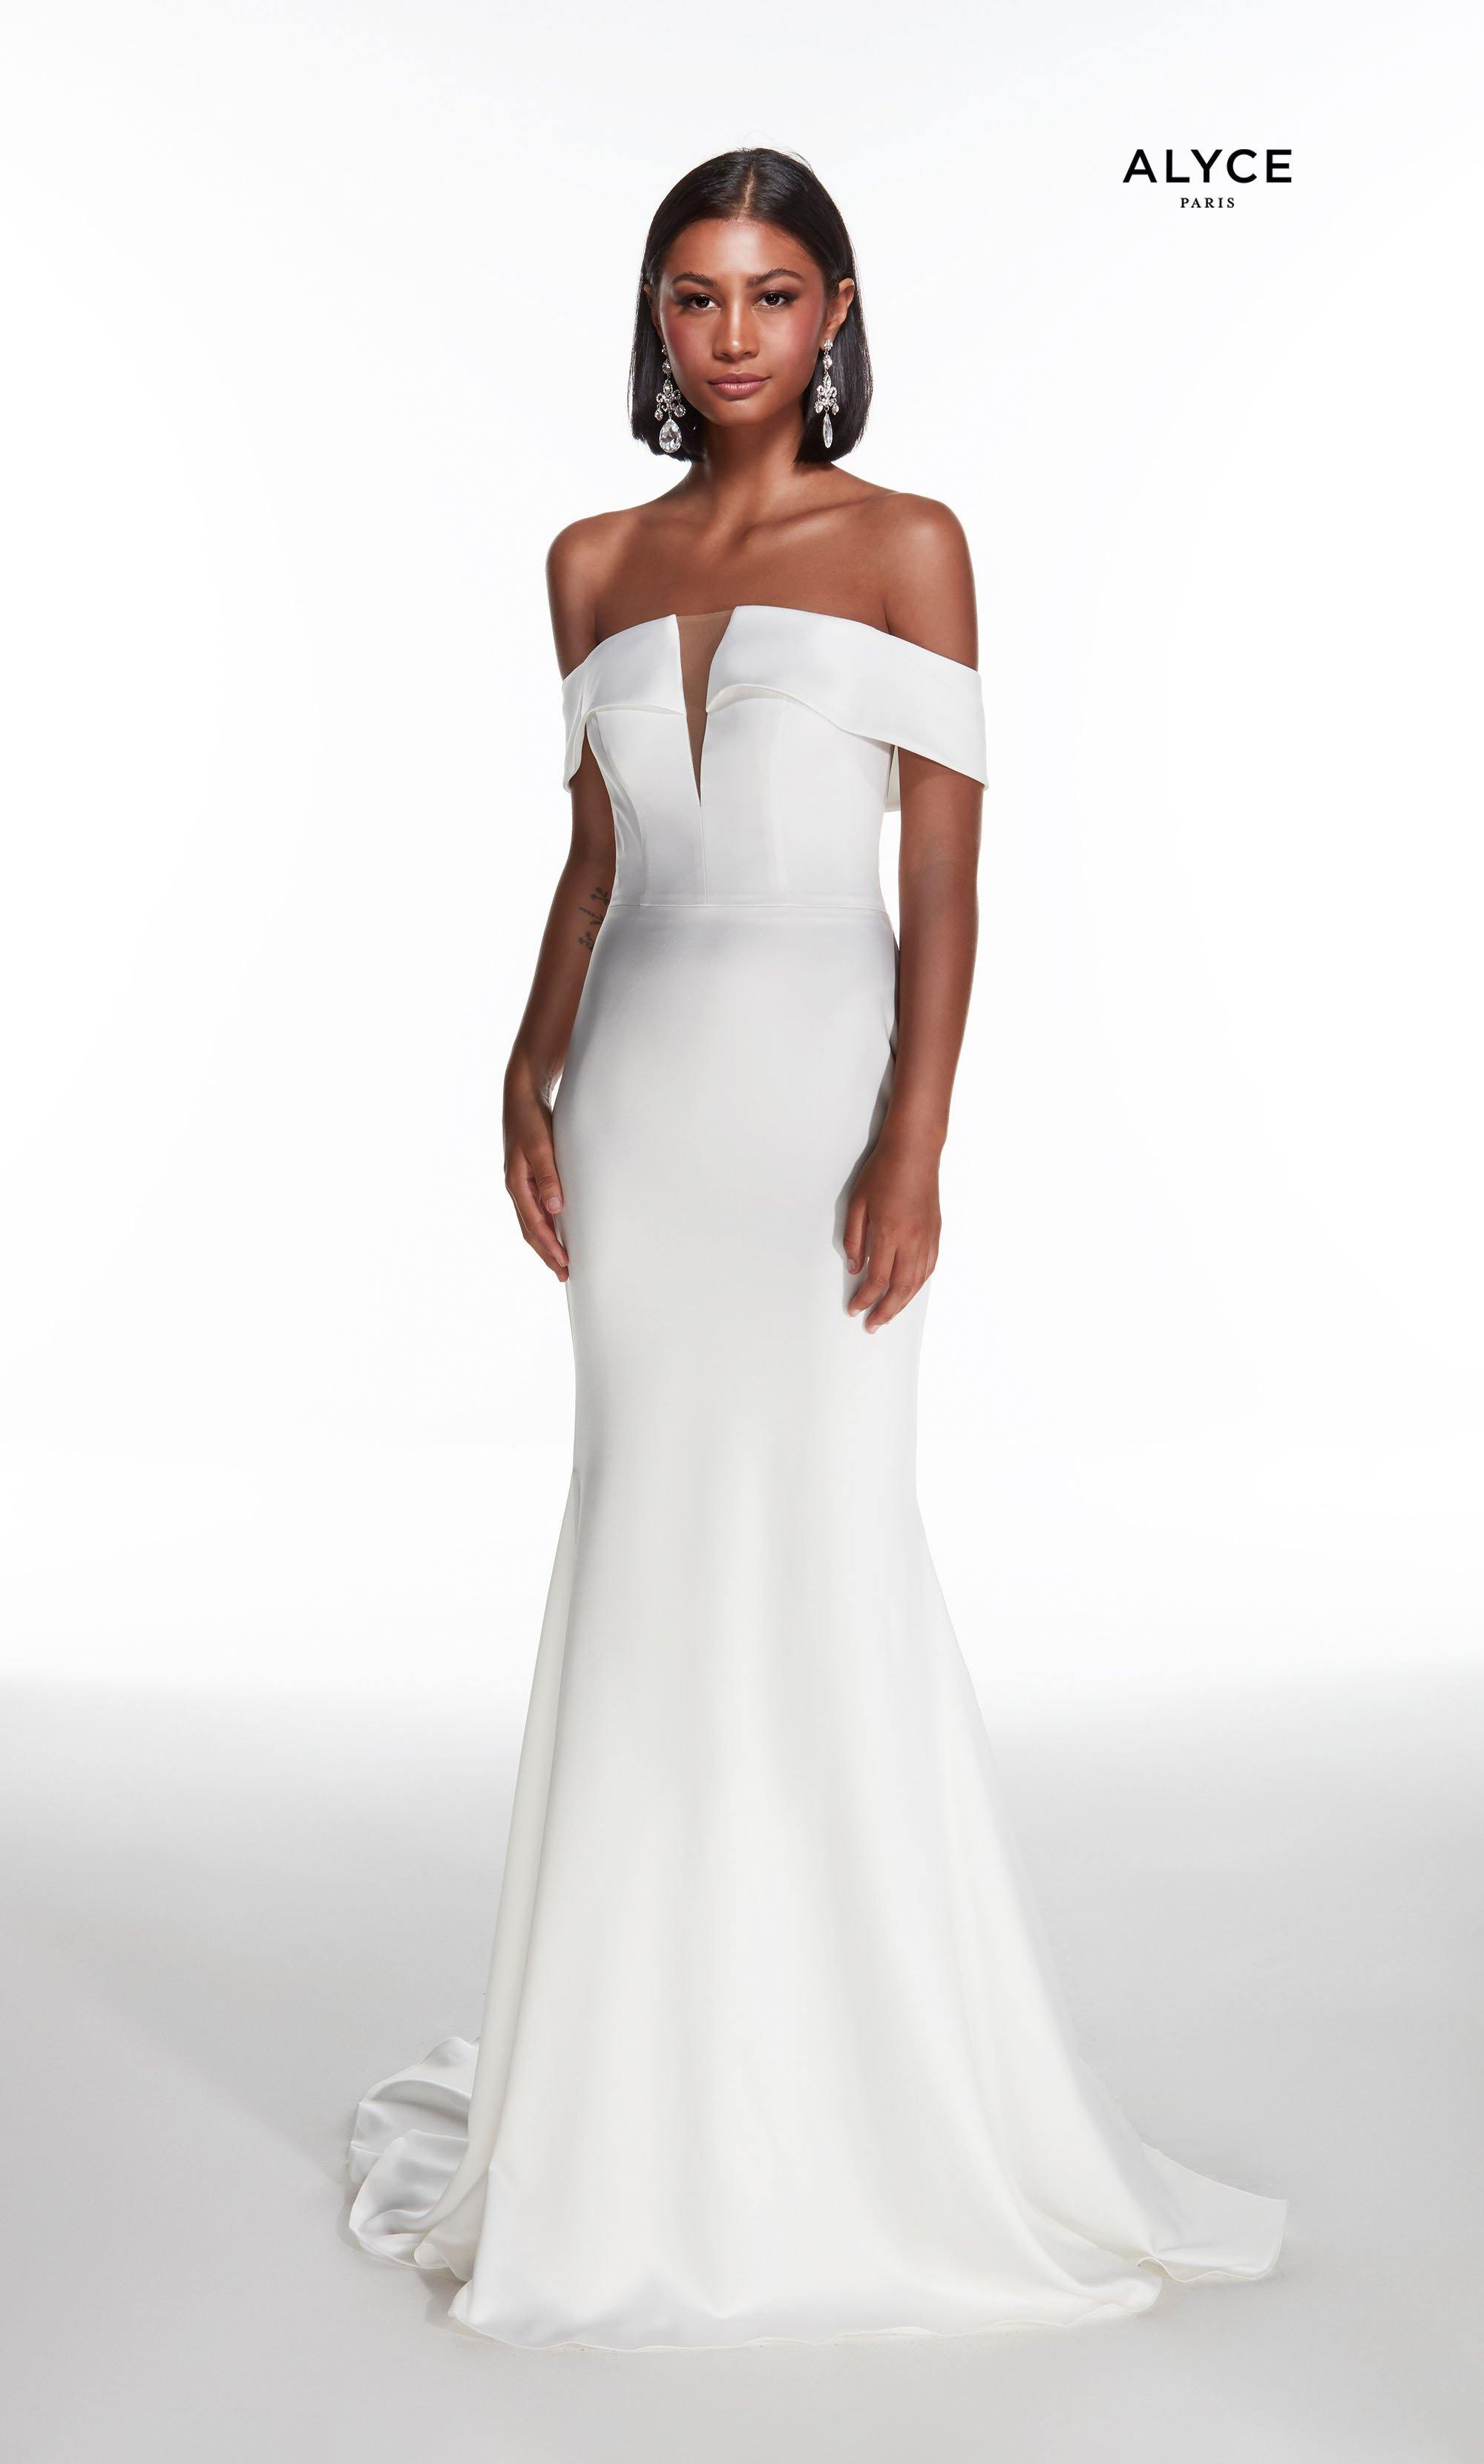 Diamond White off the shoulder satin wedding dress with a detachable layered overskirt with jewel accented waist